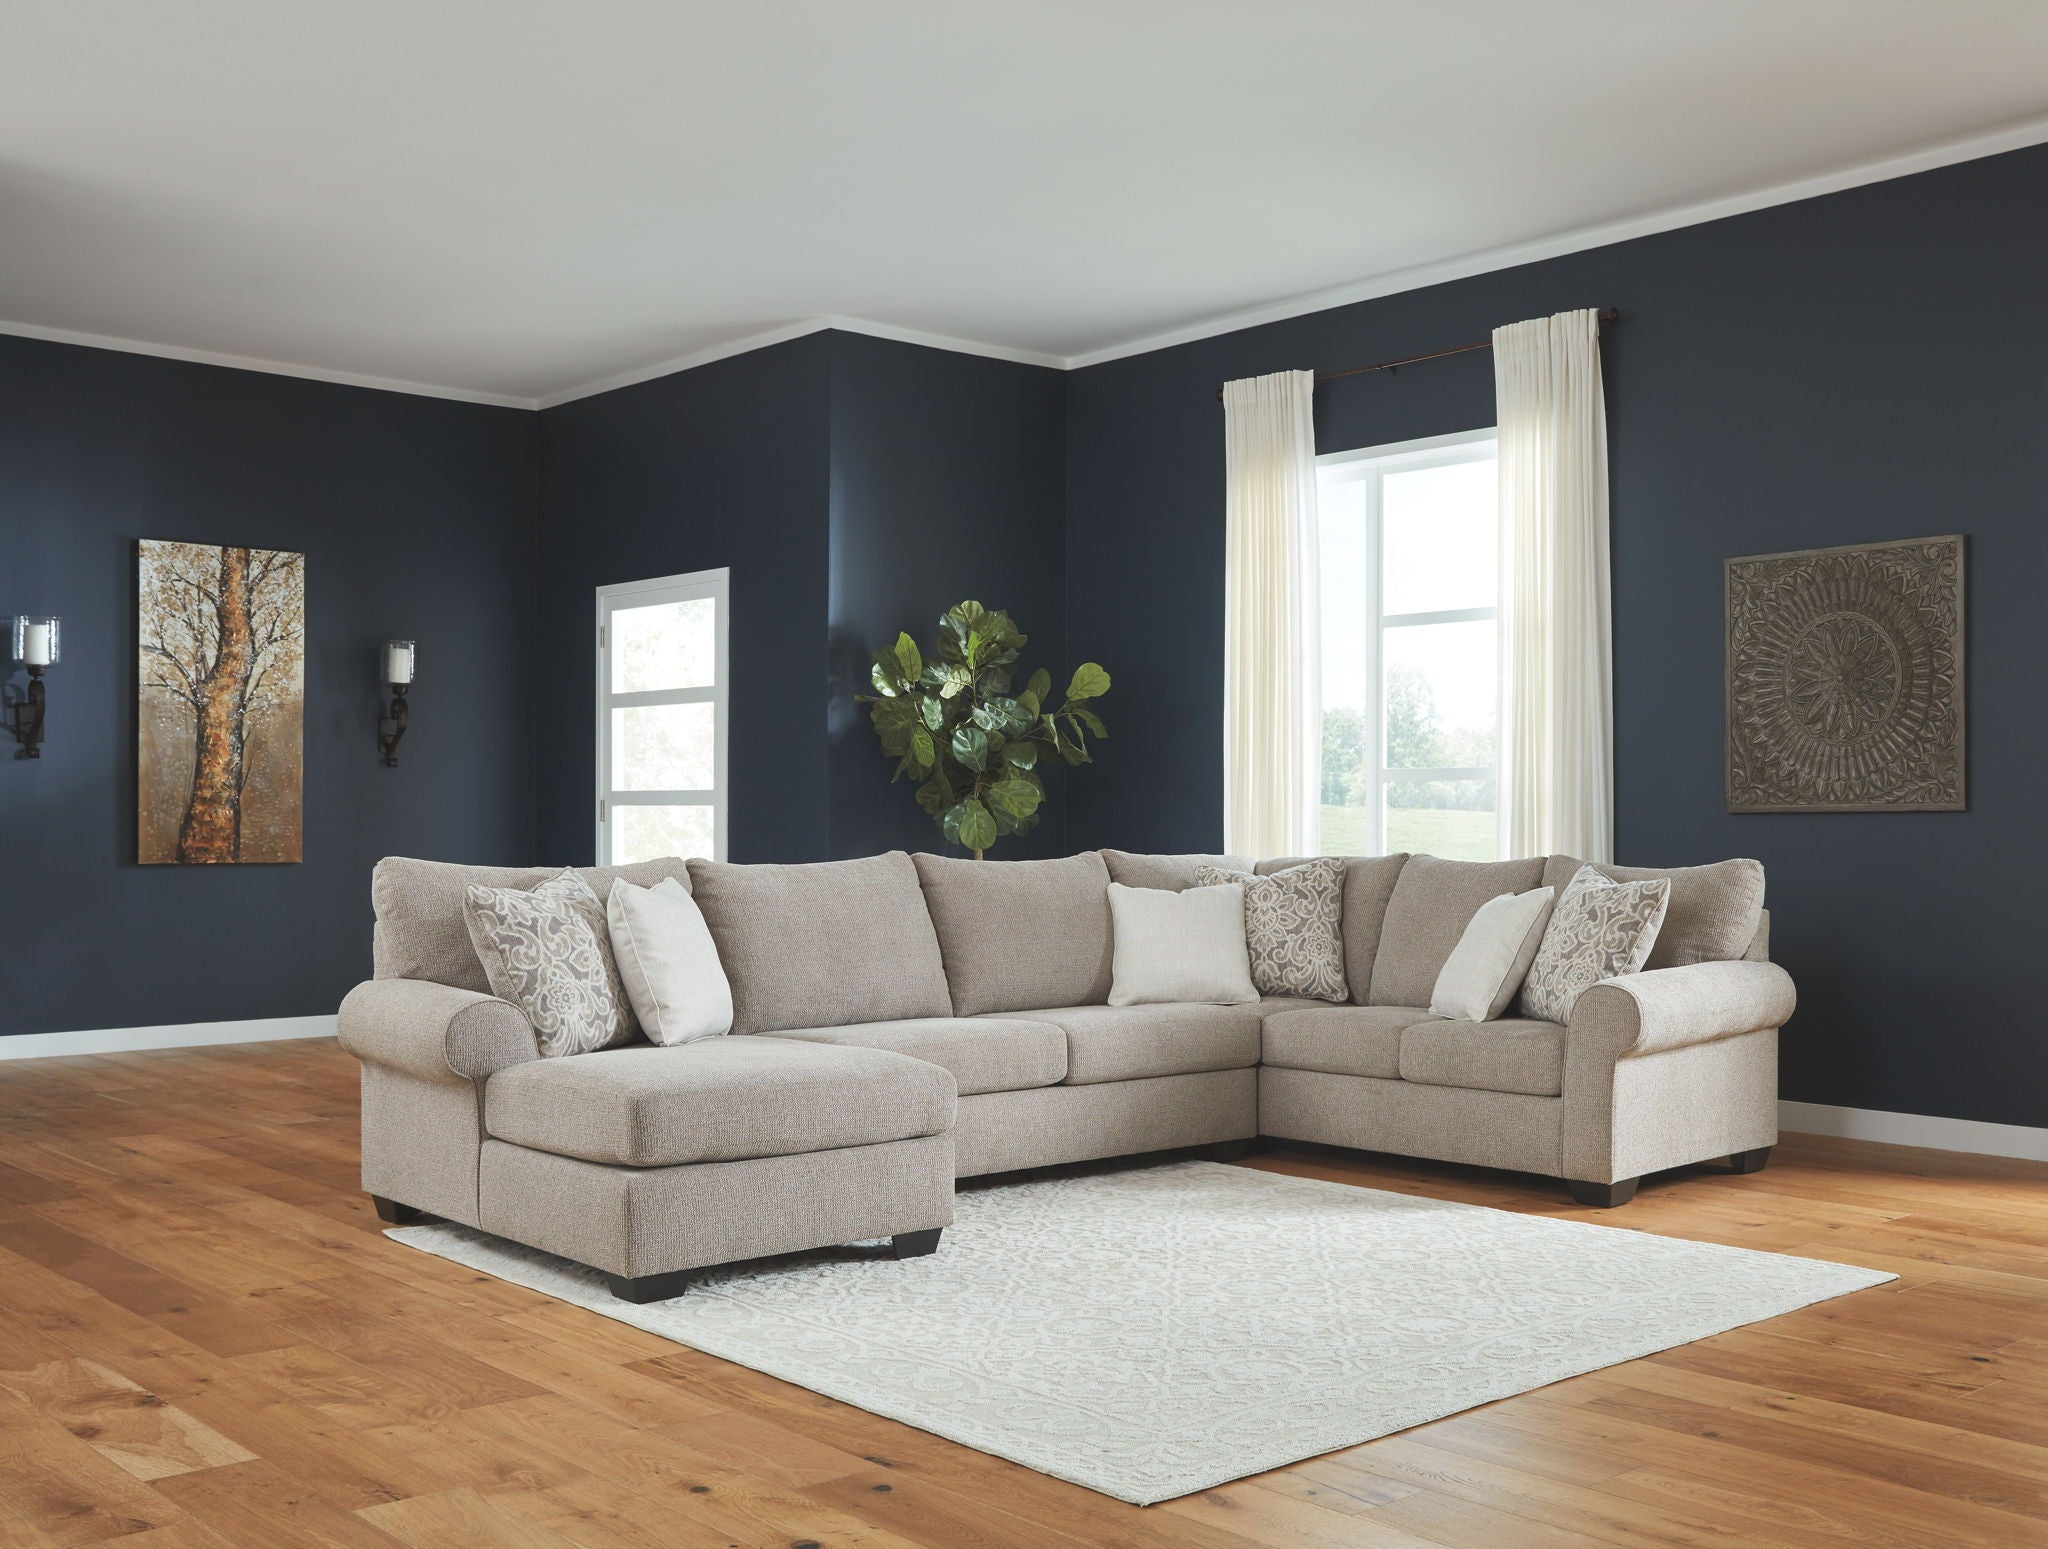 Baranello Sectional with Chaise